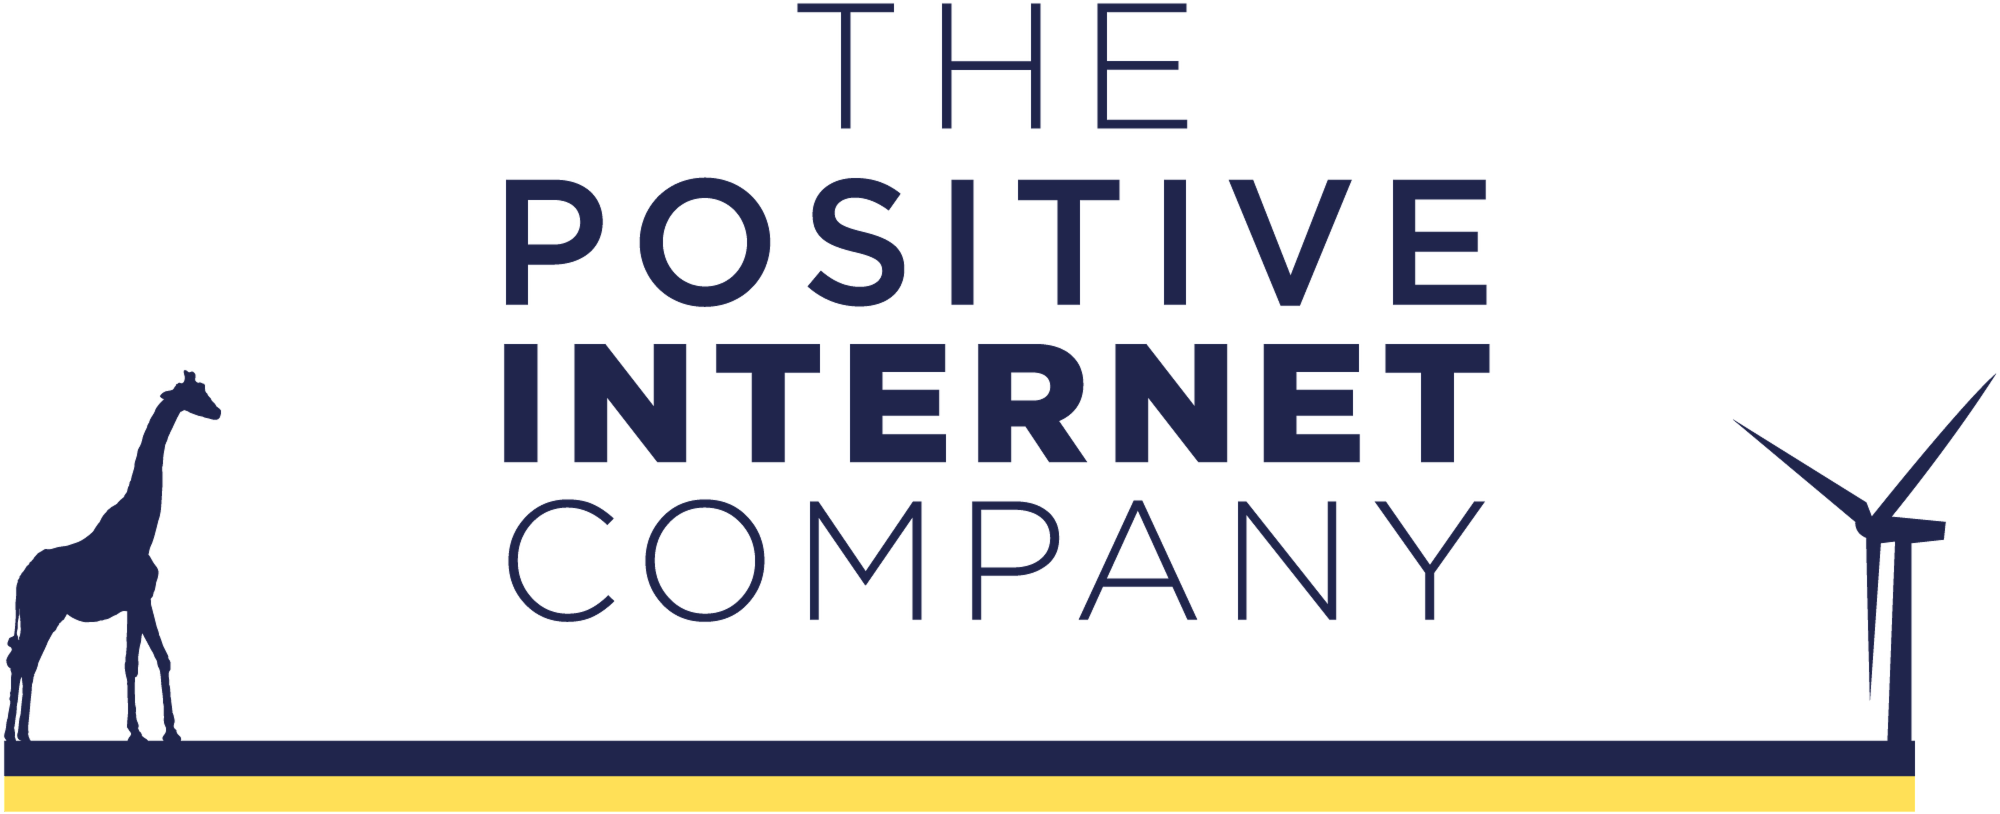 The Positive Internet Company